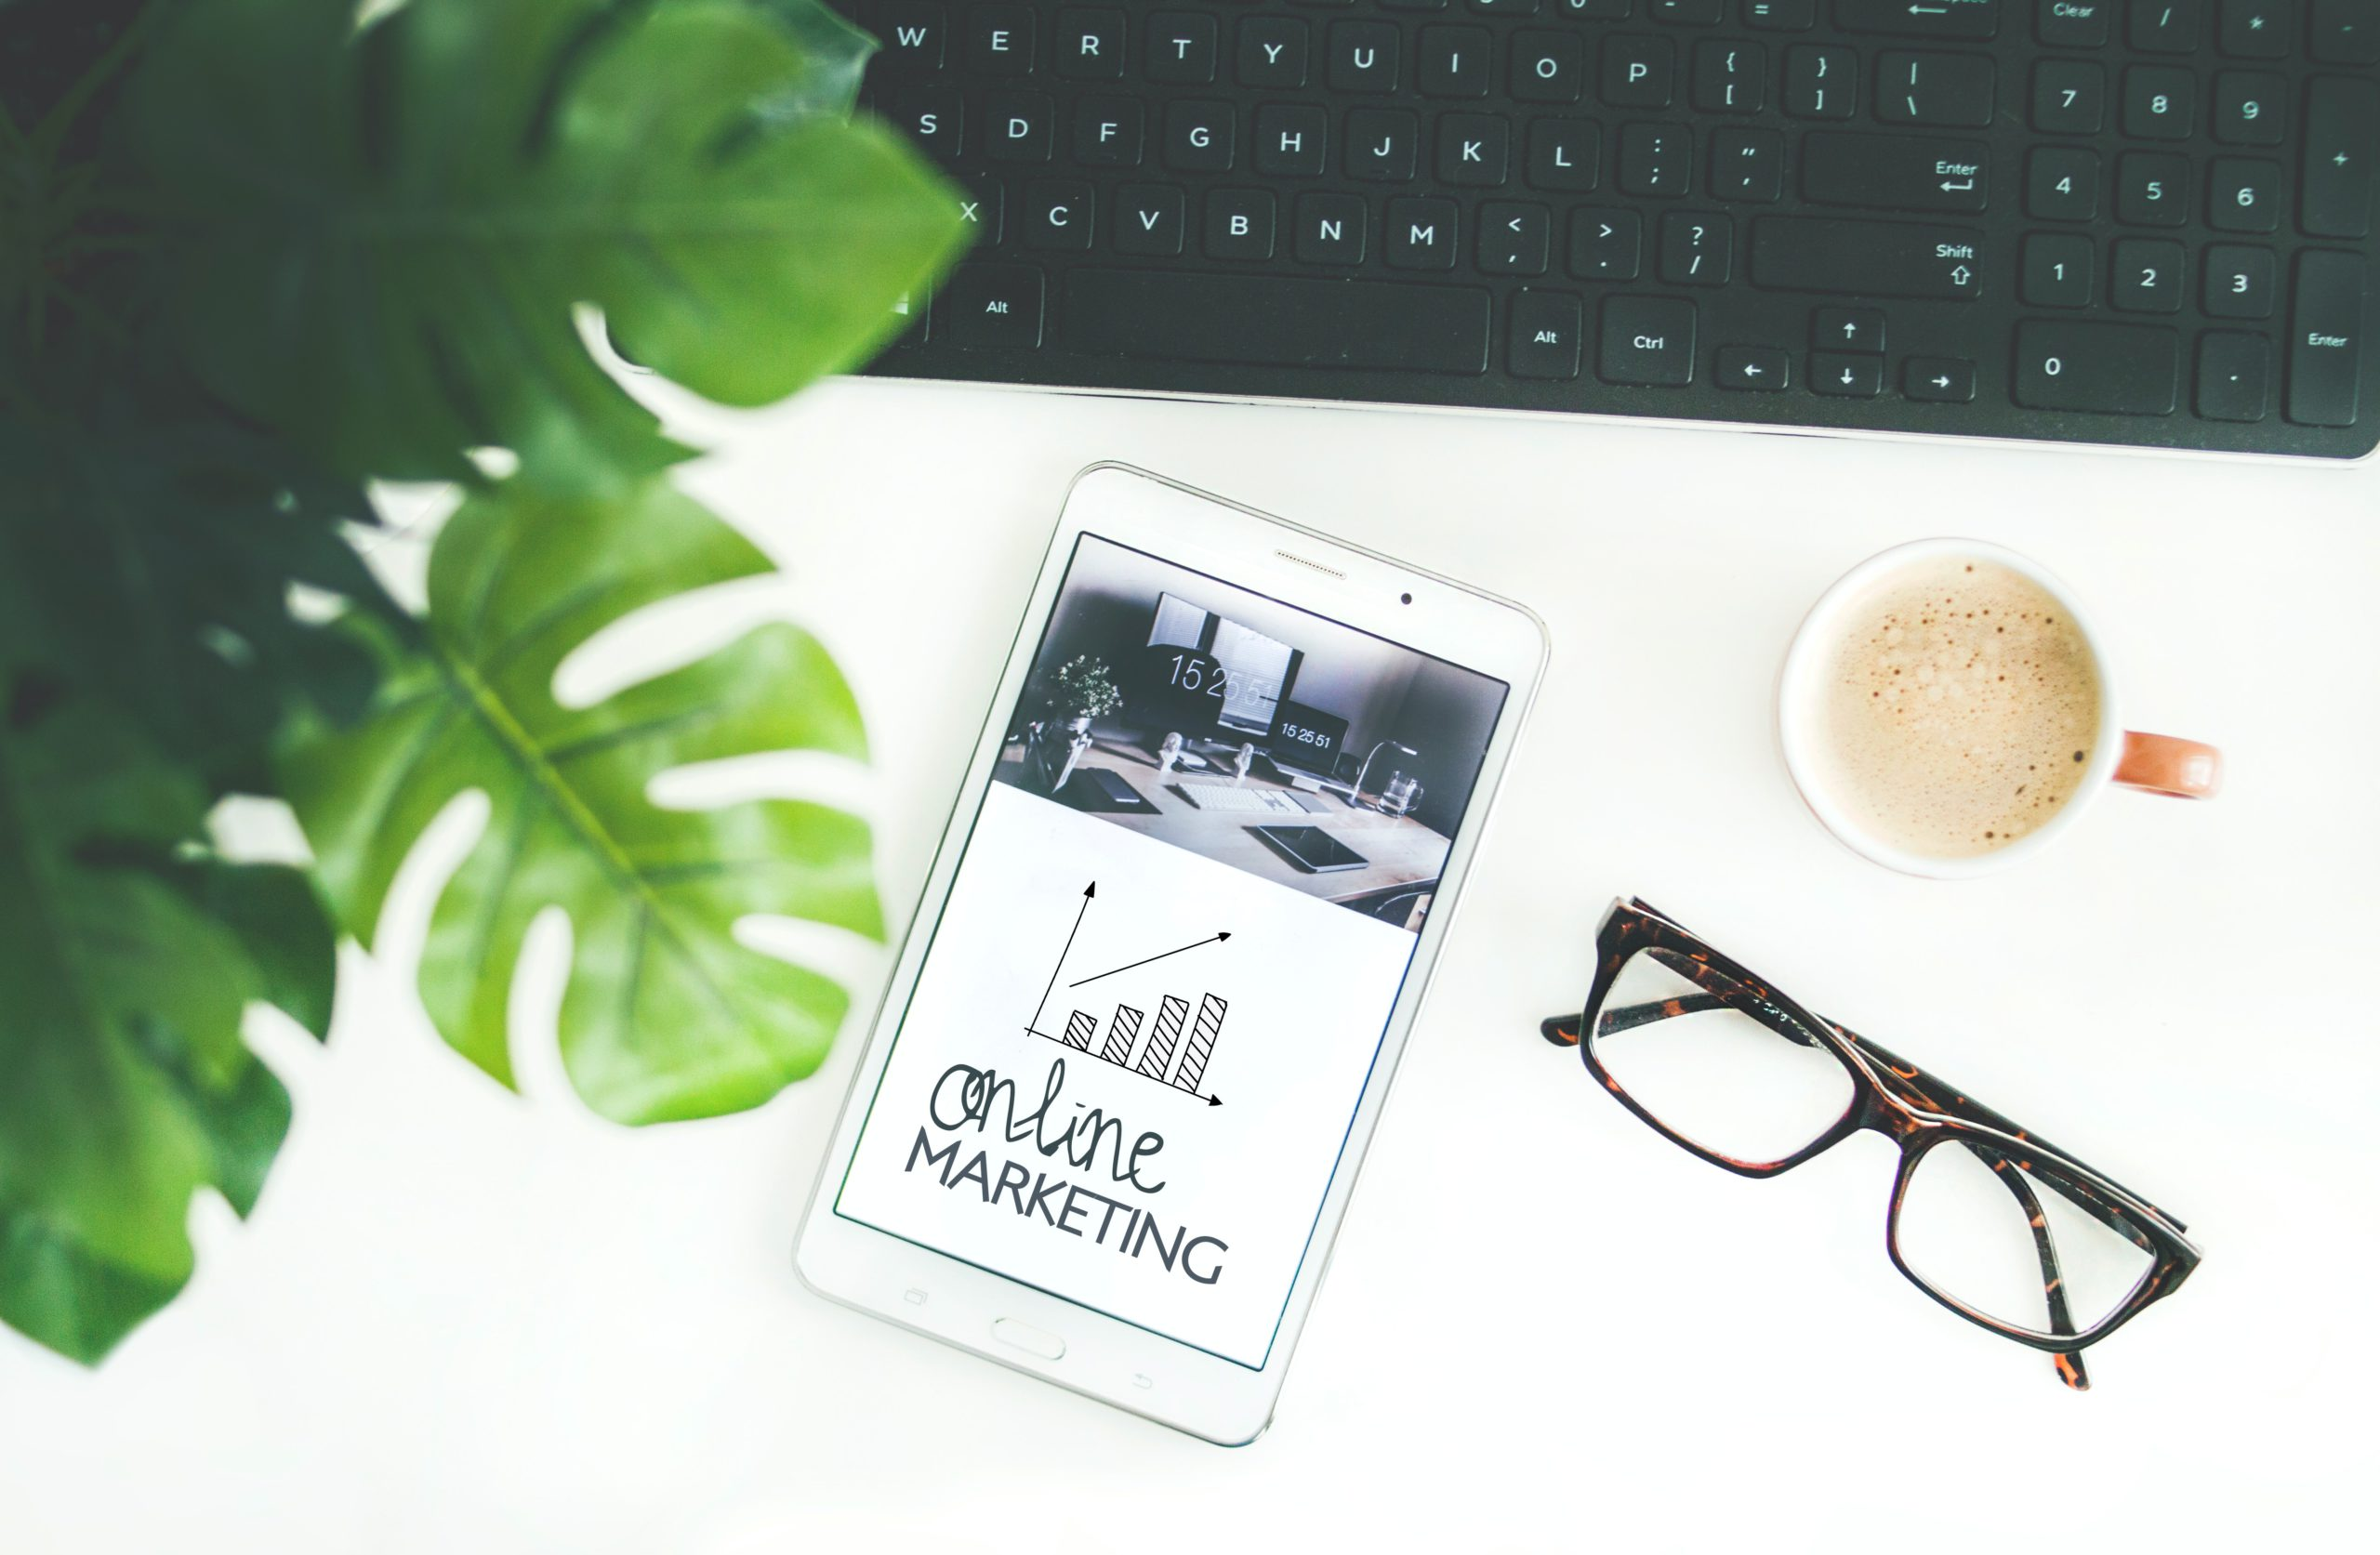 The importance of digital marketing to small businesses